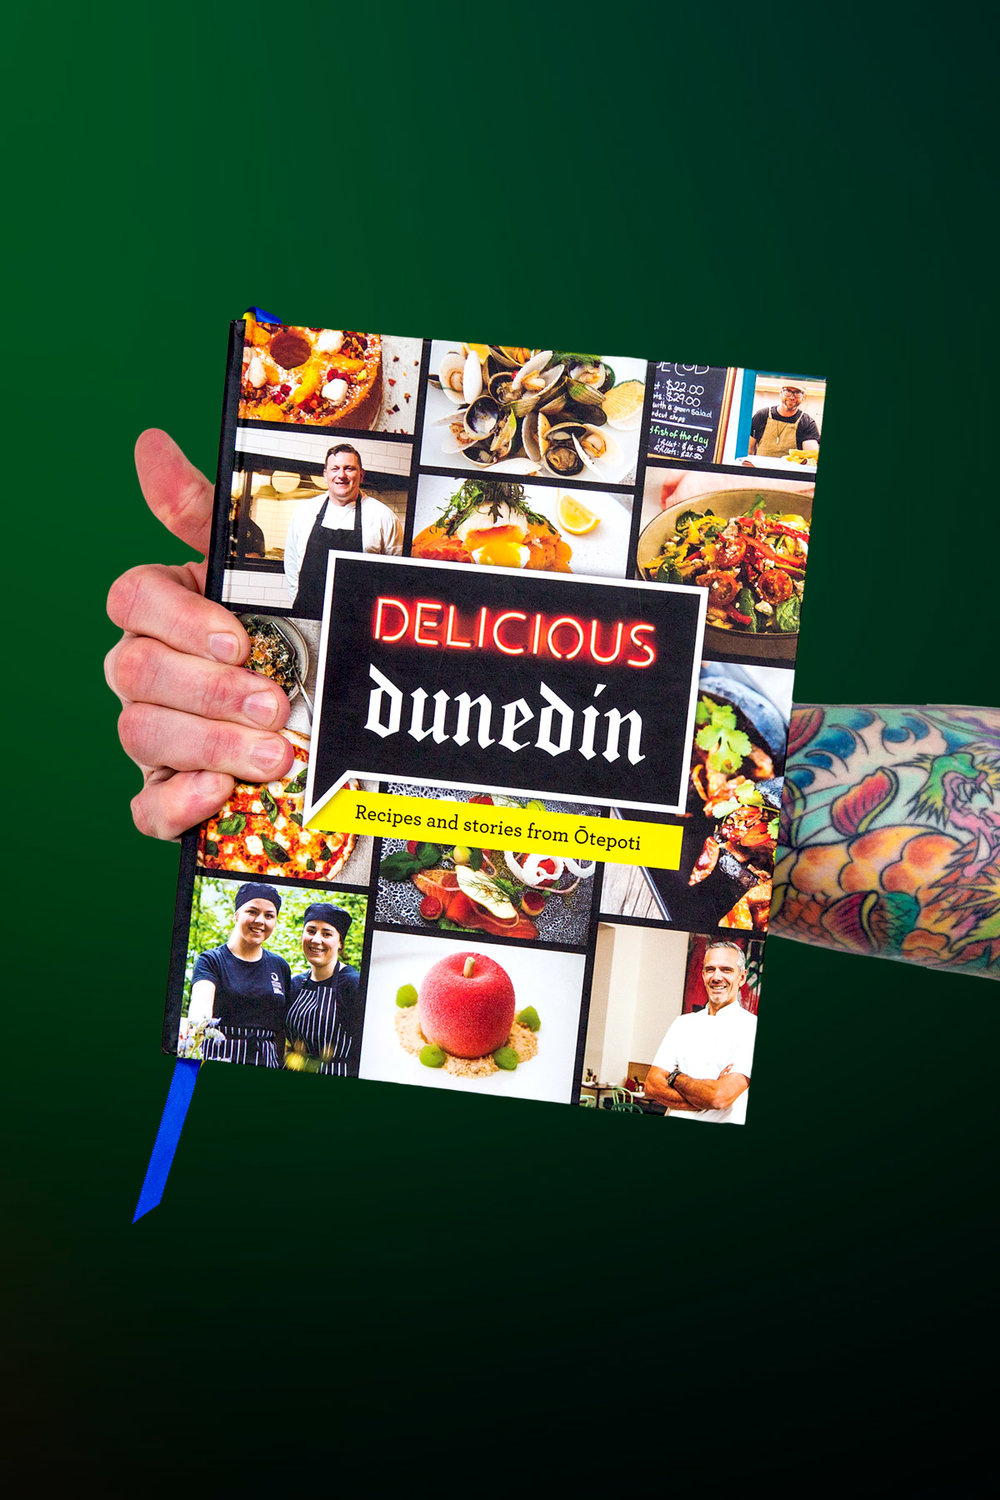 Delicious Dunedin - With more than 90 recipes, great food anecdotes from the people of Dunedin and stunning food photography by New Zealand's leading food photographer Kelly Lindsay, Delicious Dunedin is your essential guide to the culinary treasure trove of the city and the perfect gift for every New Zealander and visitor to our beautiful city.Buy this book online.(Published August 2018)